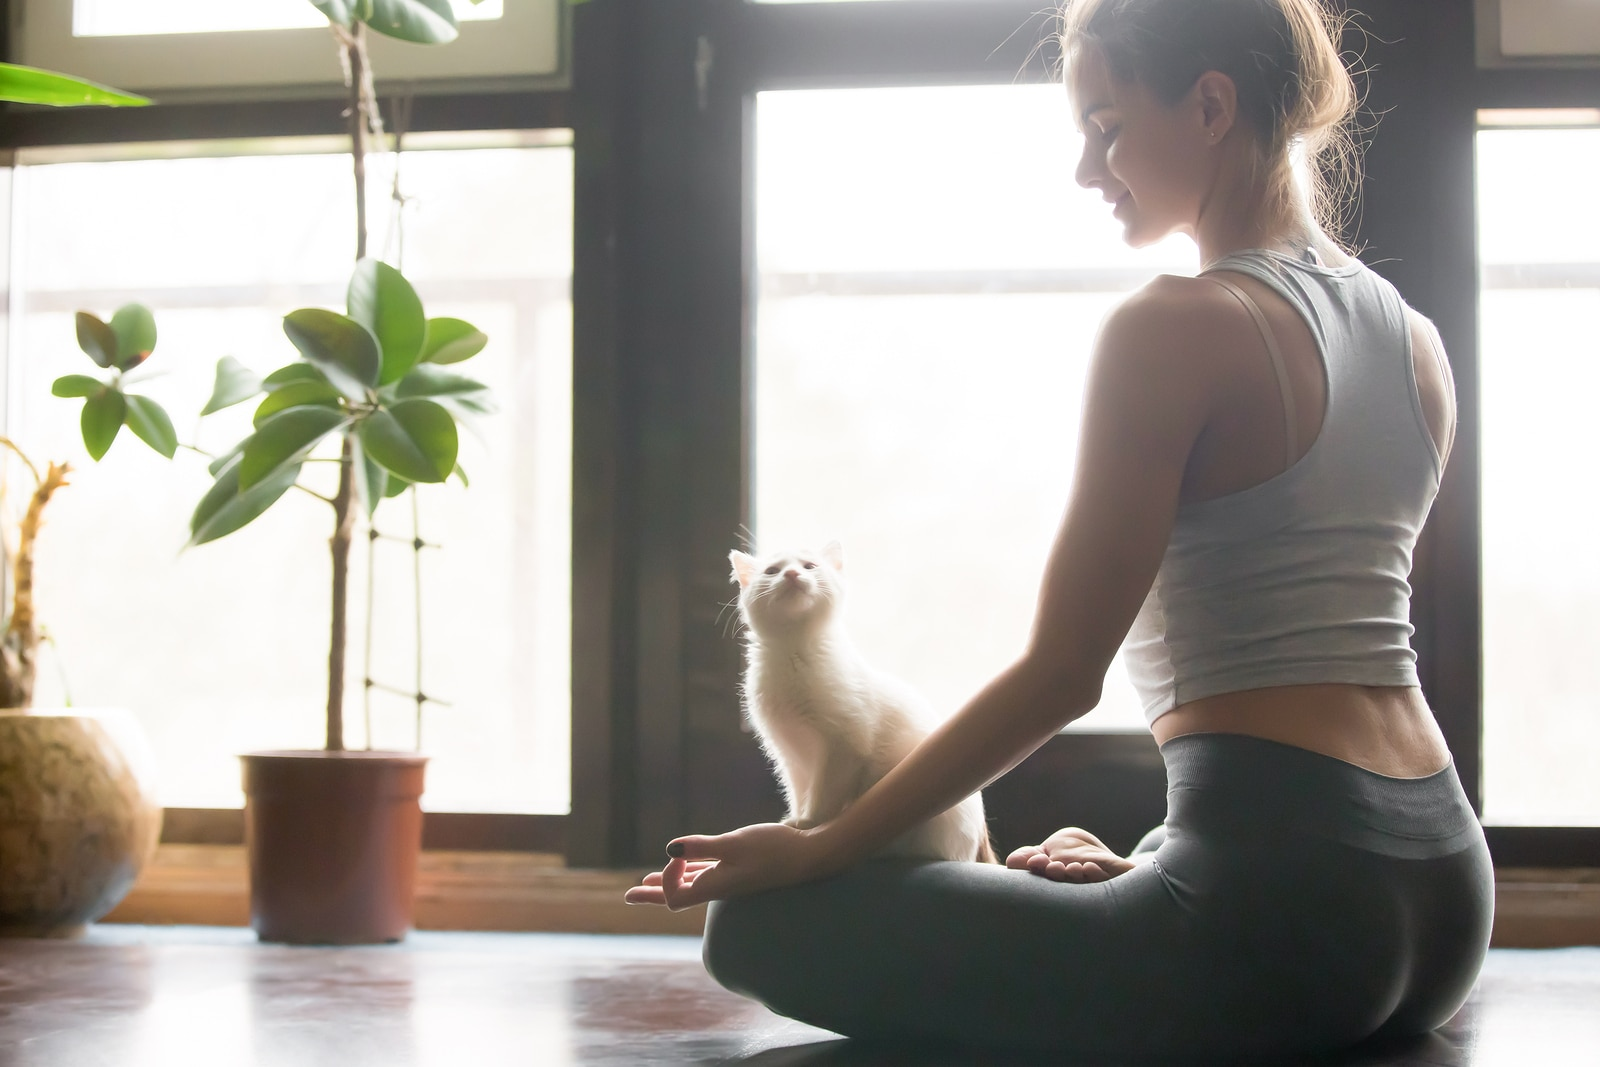 Blonde woman sitting in a yoga position as white cat looks on interested.